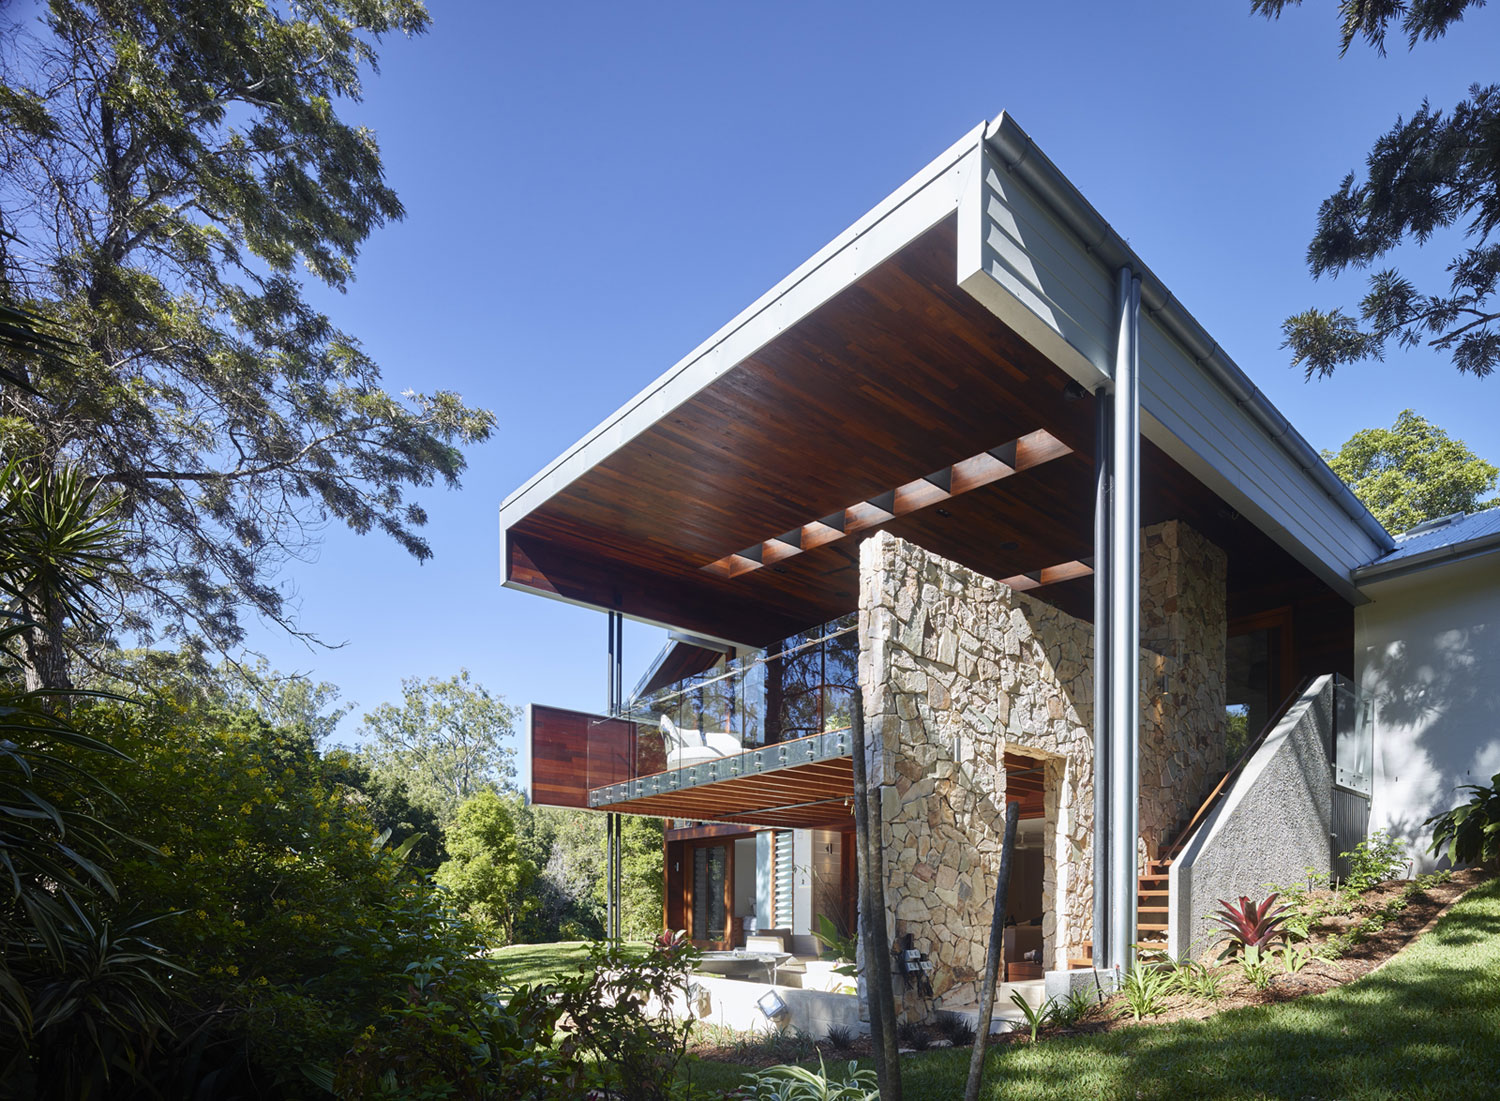 A Contemporary Home in the Forests of Kenmore Hills